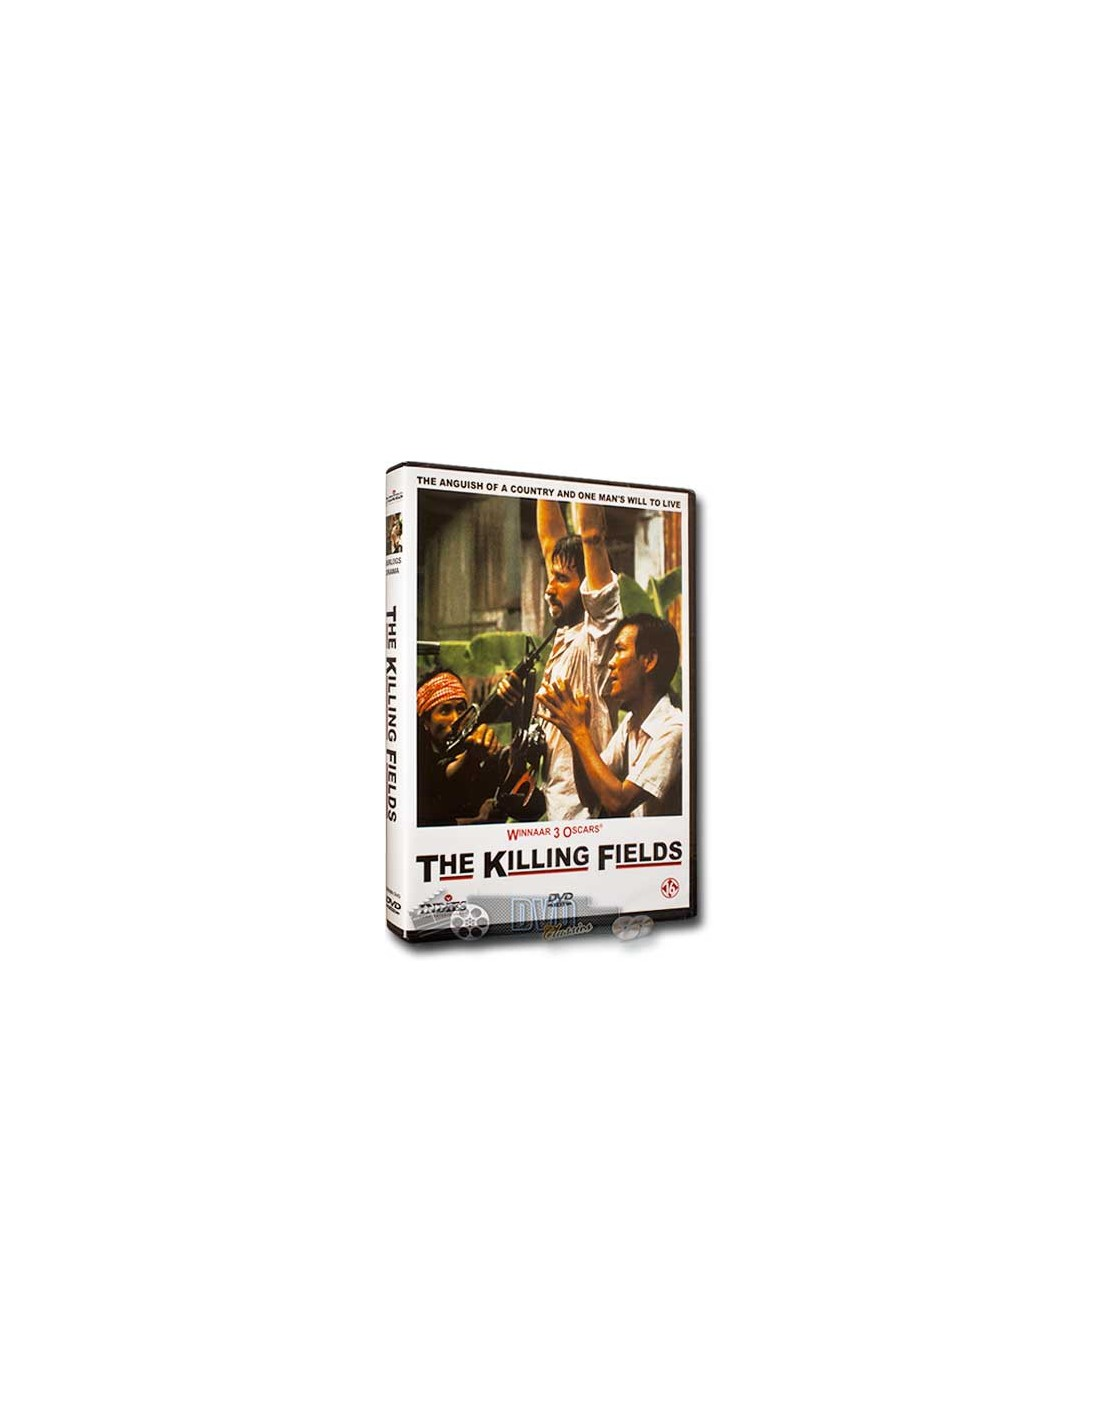 a review of the killing fields a drama film by roland joffe The killing fields (1984) directed by roland joffe is the most haunting and emotional film i have ever seen  drama and horror.